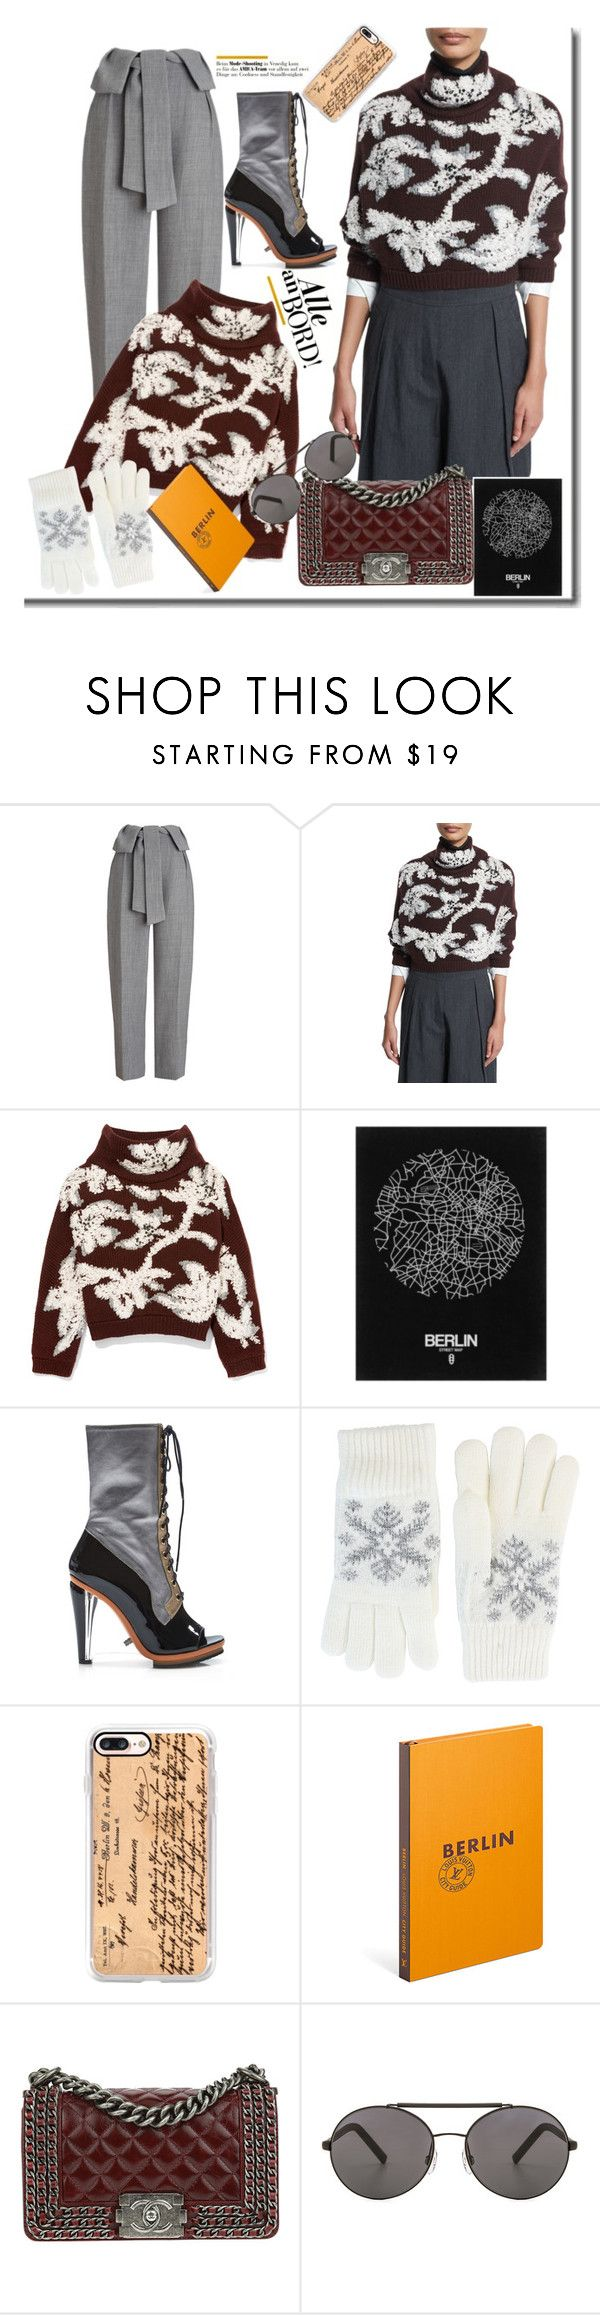 """Outfit travel to Berlin"" by faten-m-h ❤ liked on Polyvore featuring Whistles, Brunello Cucinelli, Rodarte, Fits, Casetify, Louis Vuitton, Chanel, Seafolly and plus size clothing"